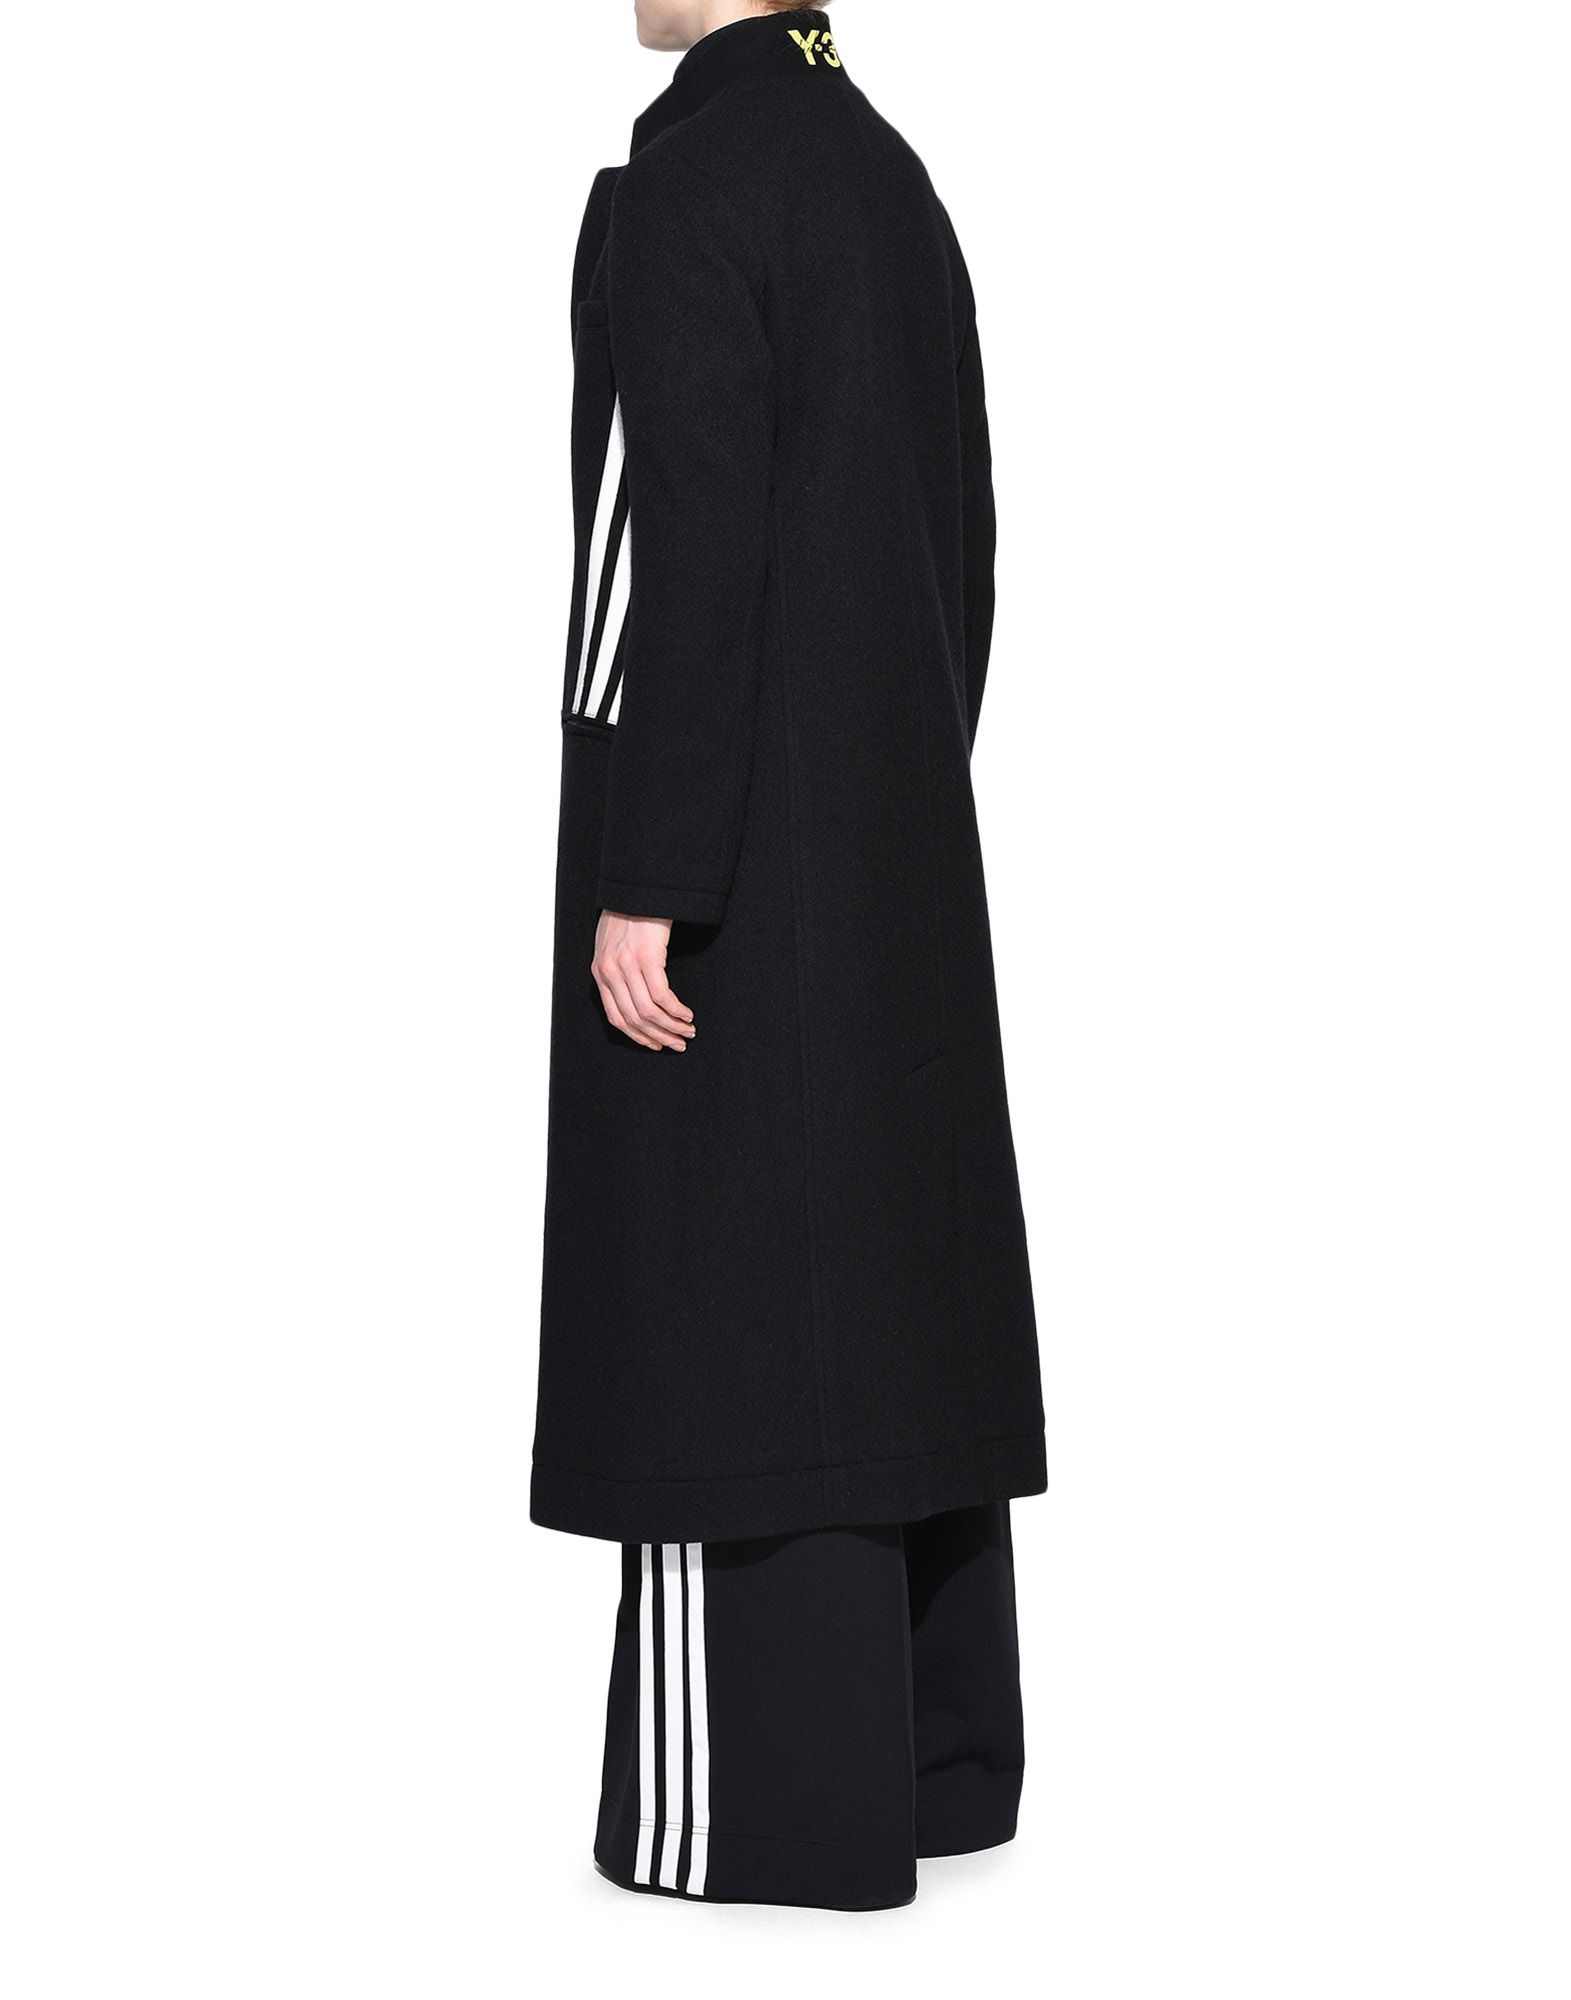 Y-3 Y-3 3-Stripes Tailored Wool Coat Blazer Woman e